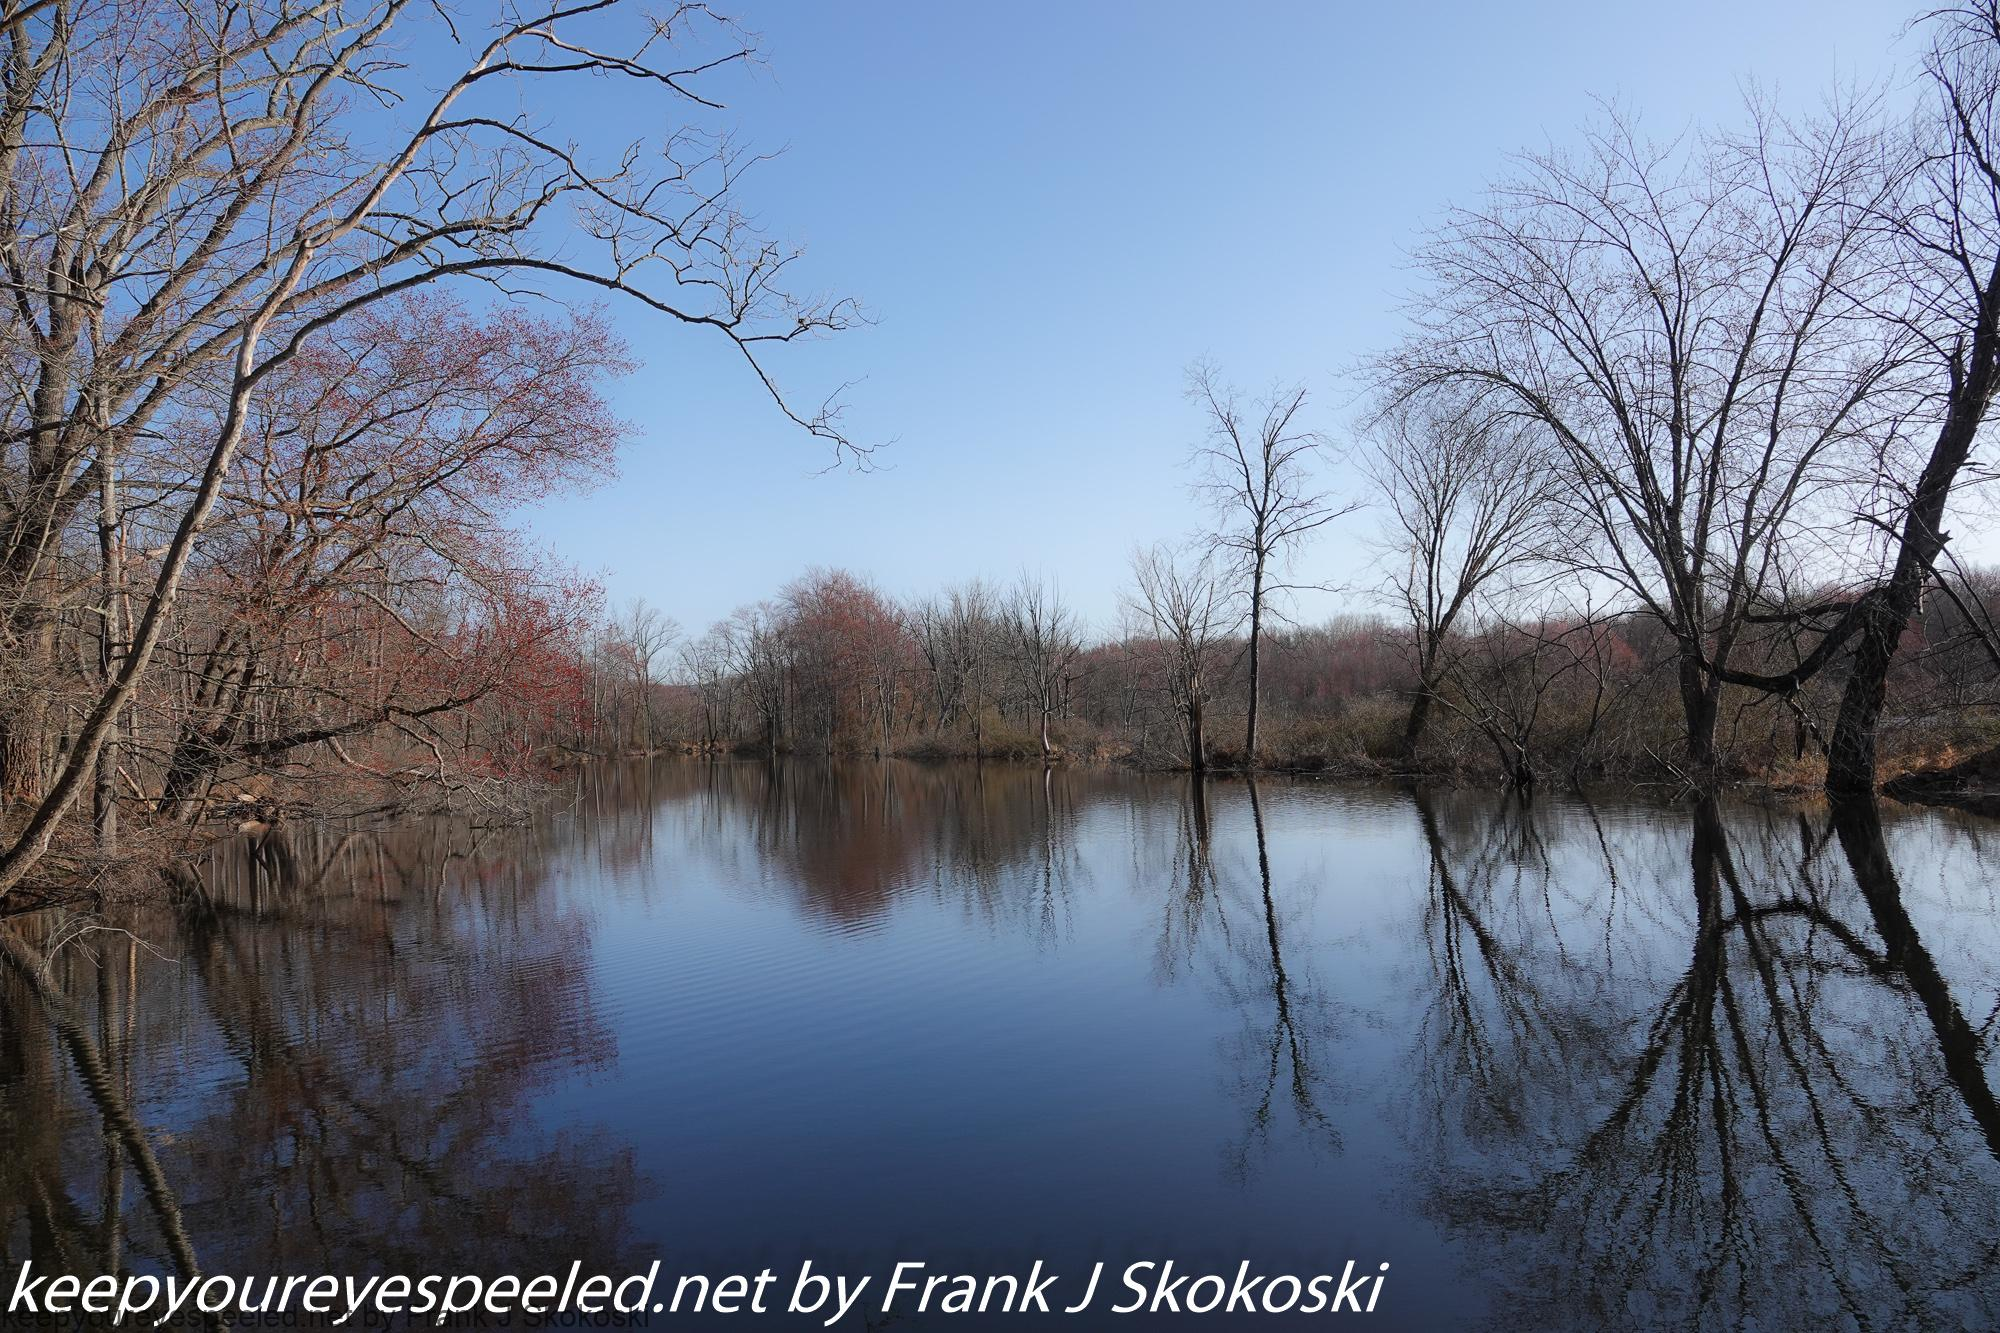 A Walk In The Susquehanna Wetlands: A Different Name But The Same Natural Beauty - Keep Your Eyes Peeled